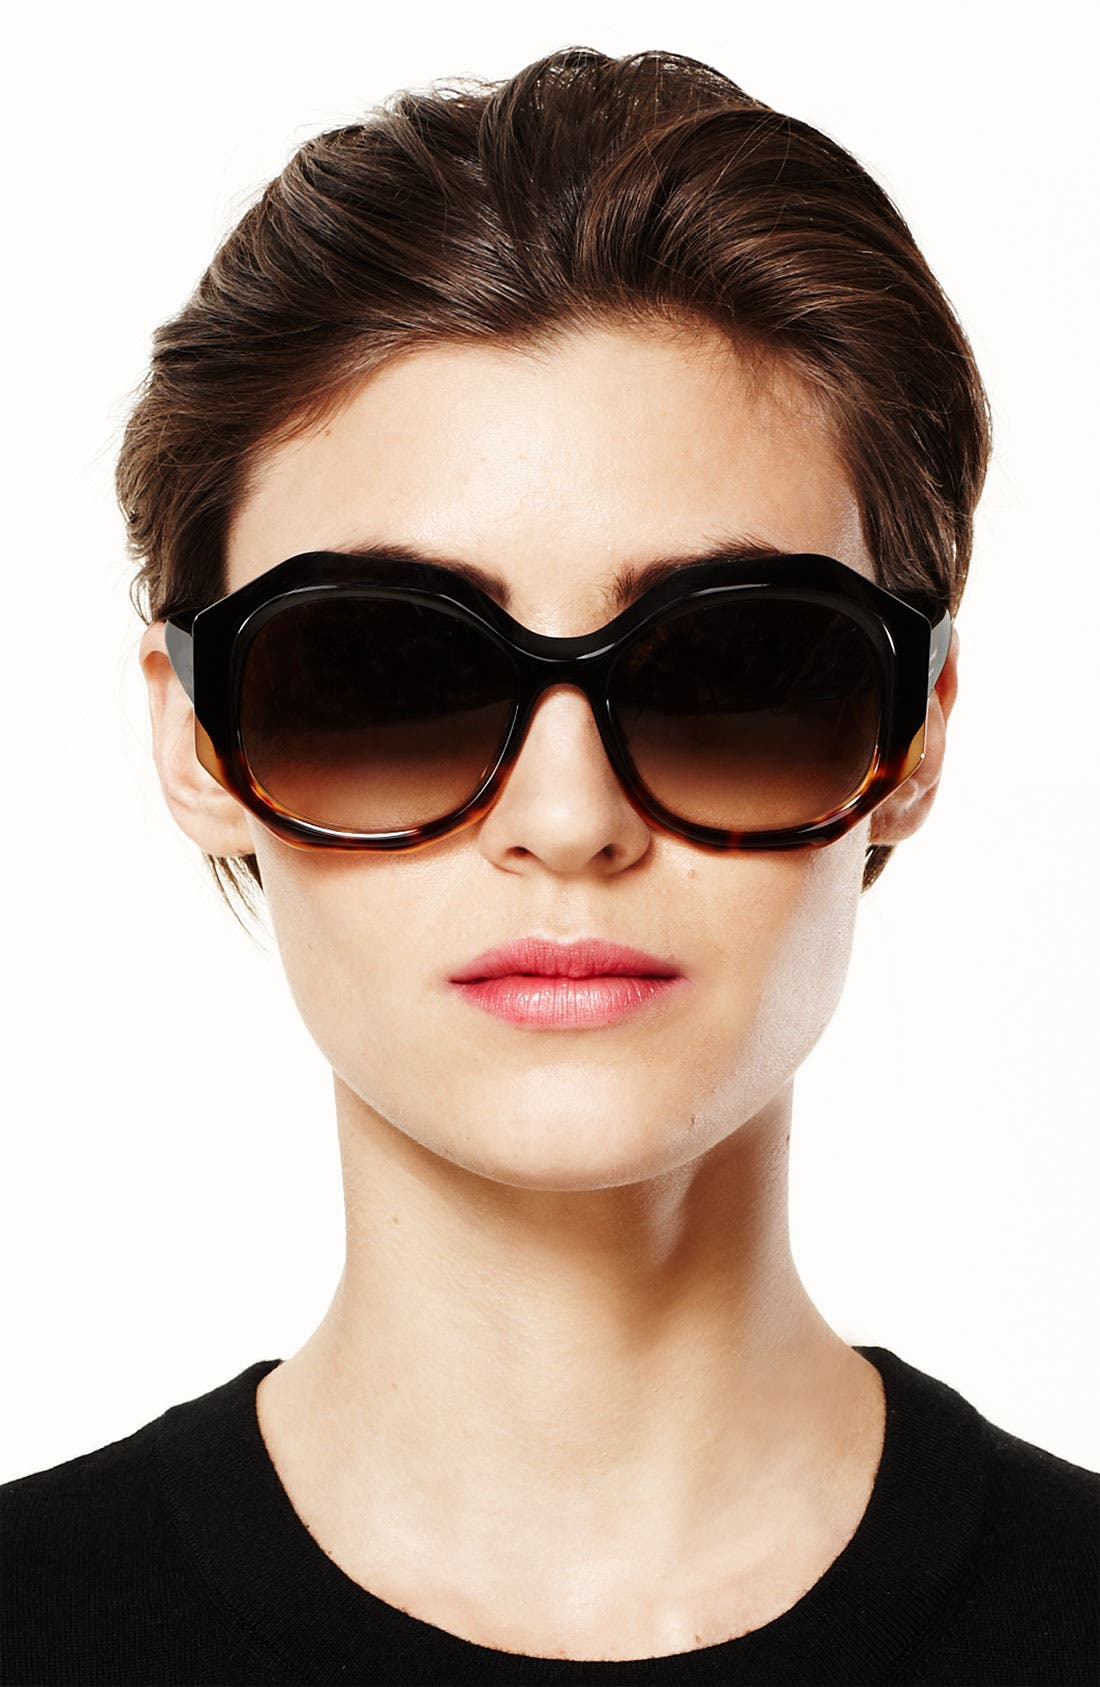 KATE SPADE NEW YORK,                             Oversized retro sunglasses,                             Alternate thumbnail 2, color,                             250